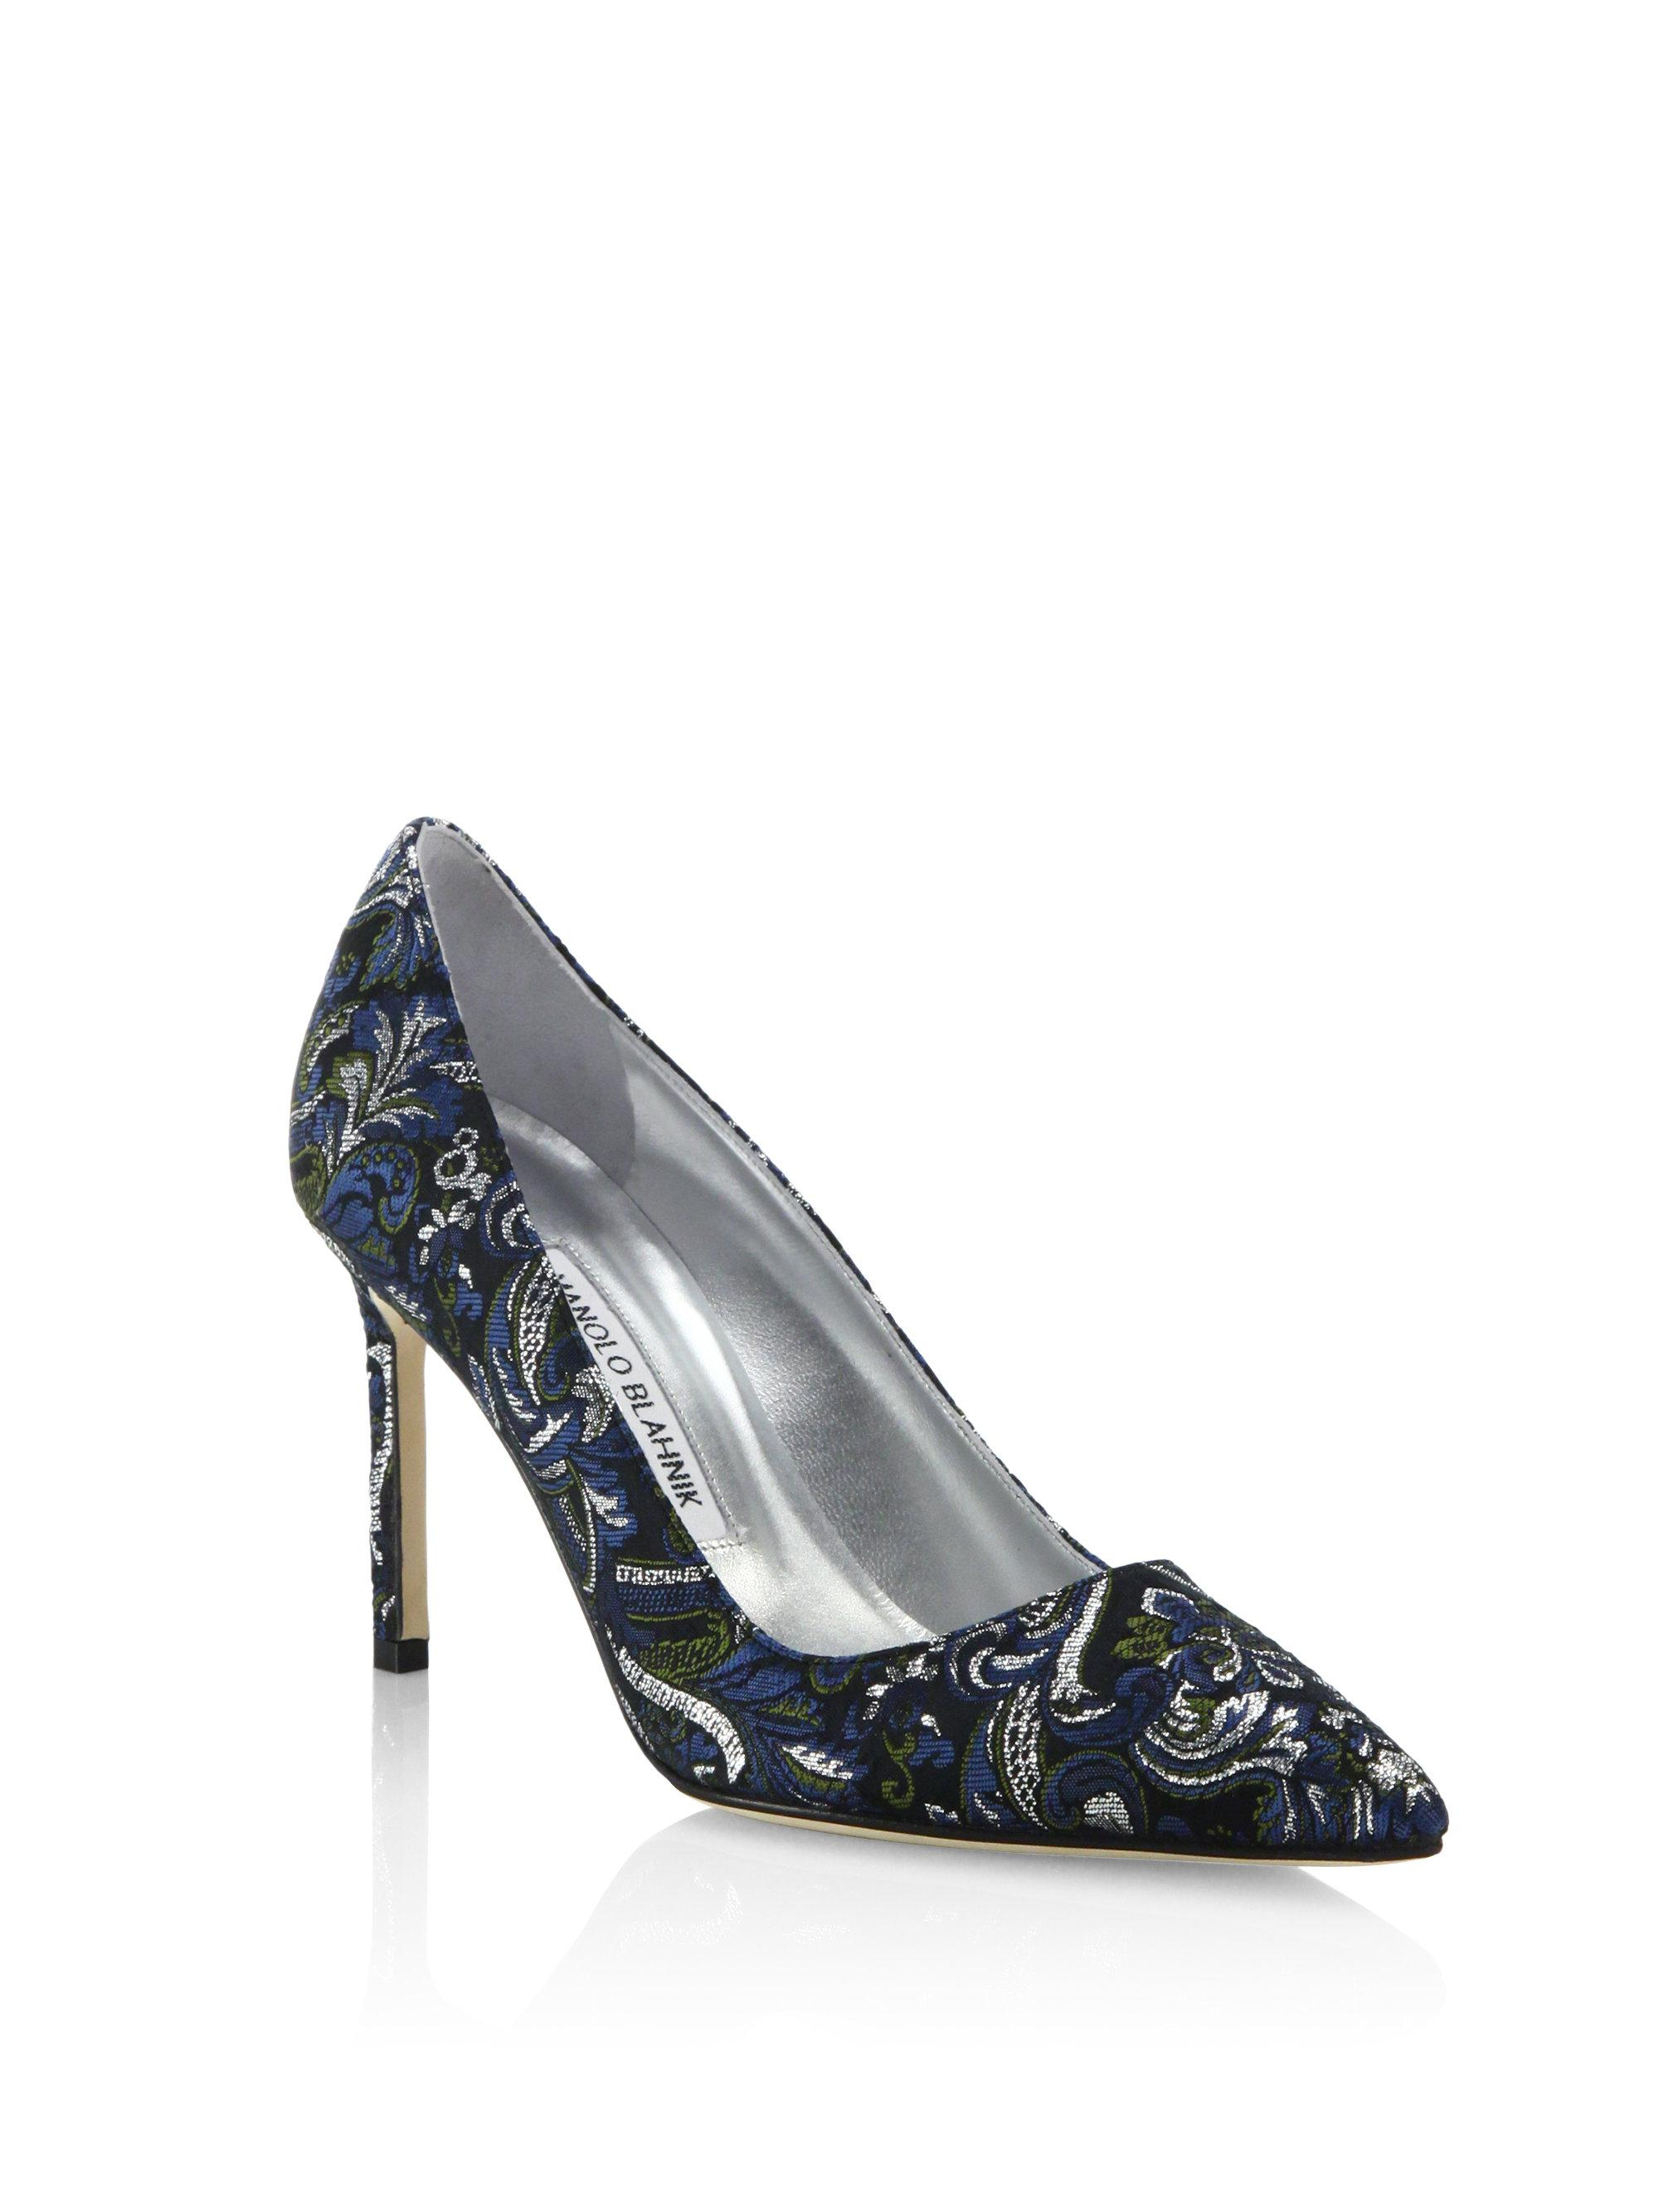 bddc4d9d Manolo Blahnik Bb Metallic Brocade Point Toe Pumps - Lyst